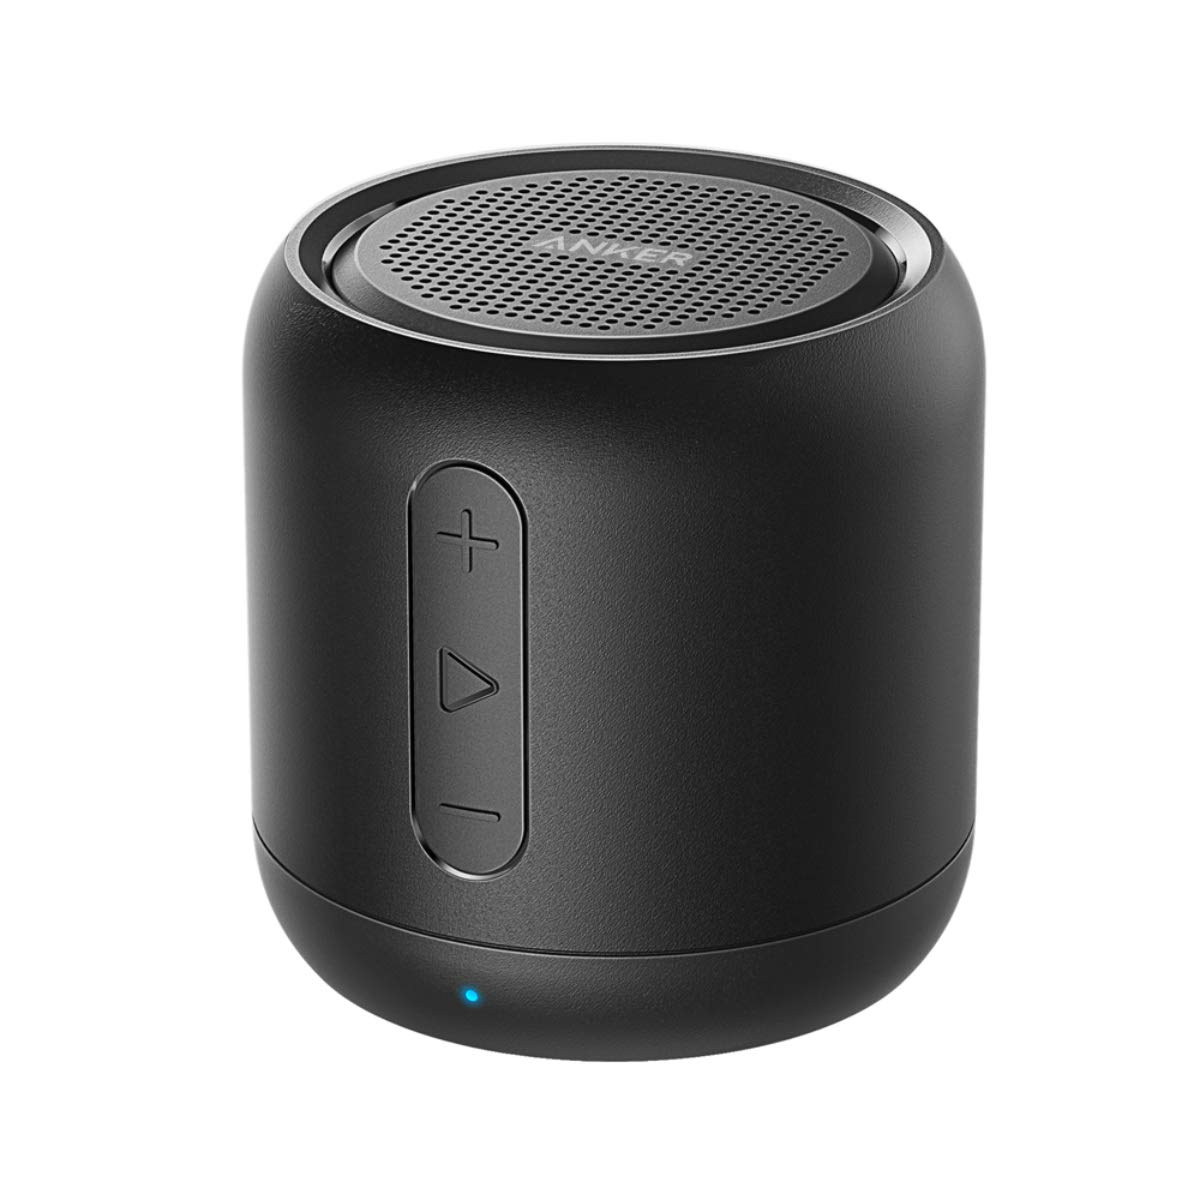 Anker SoundCore Mini, Super-Portable Bluetooth Speaker with 15-Hour Playtime, 66-Foot Bluetooth Range, Enhanced Bass, Noise-Cancelling Microphone - Black by Anker